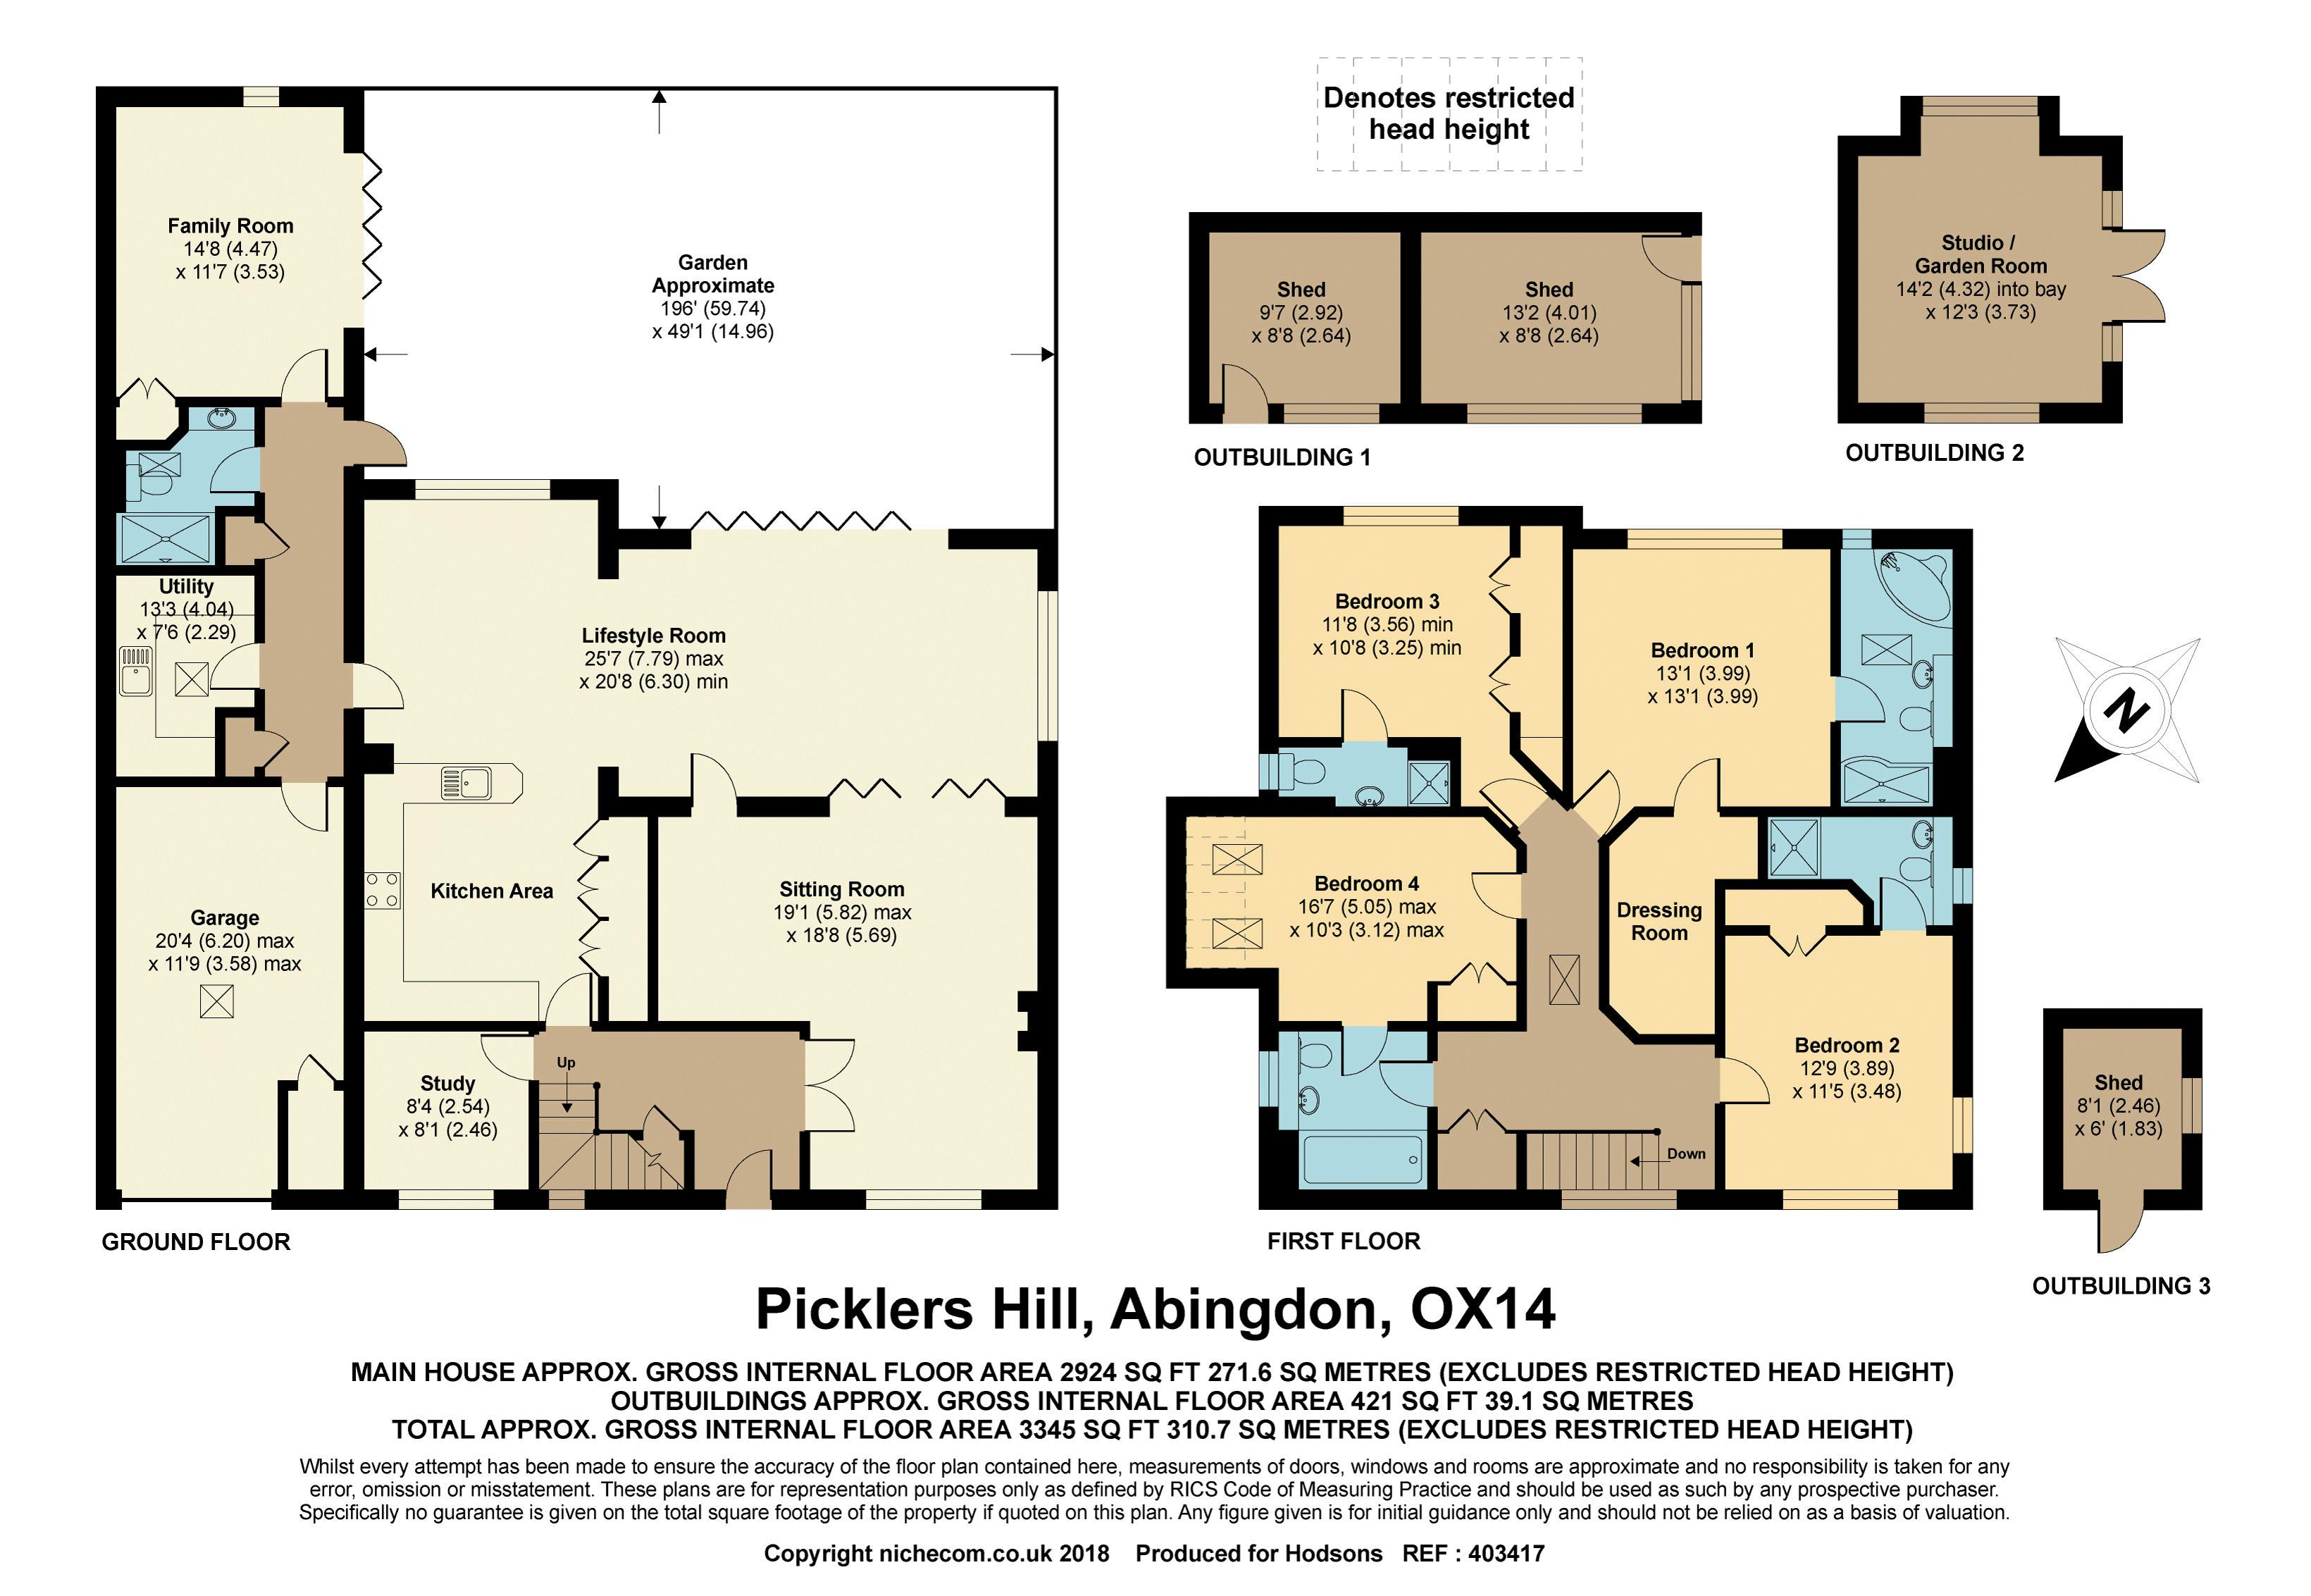 17 Picklers Hill